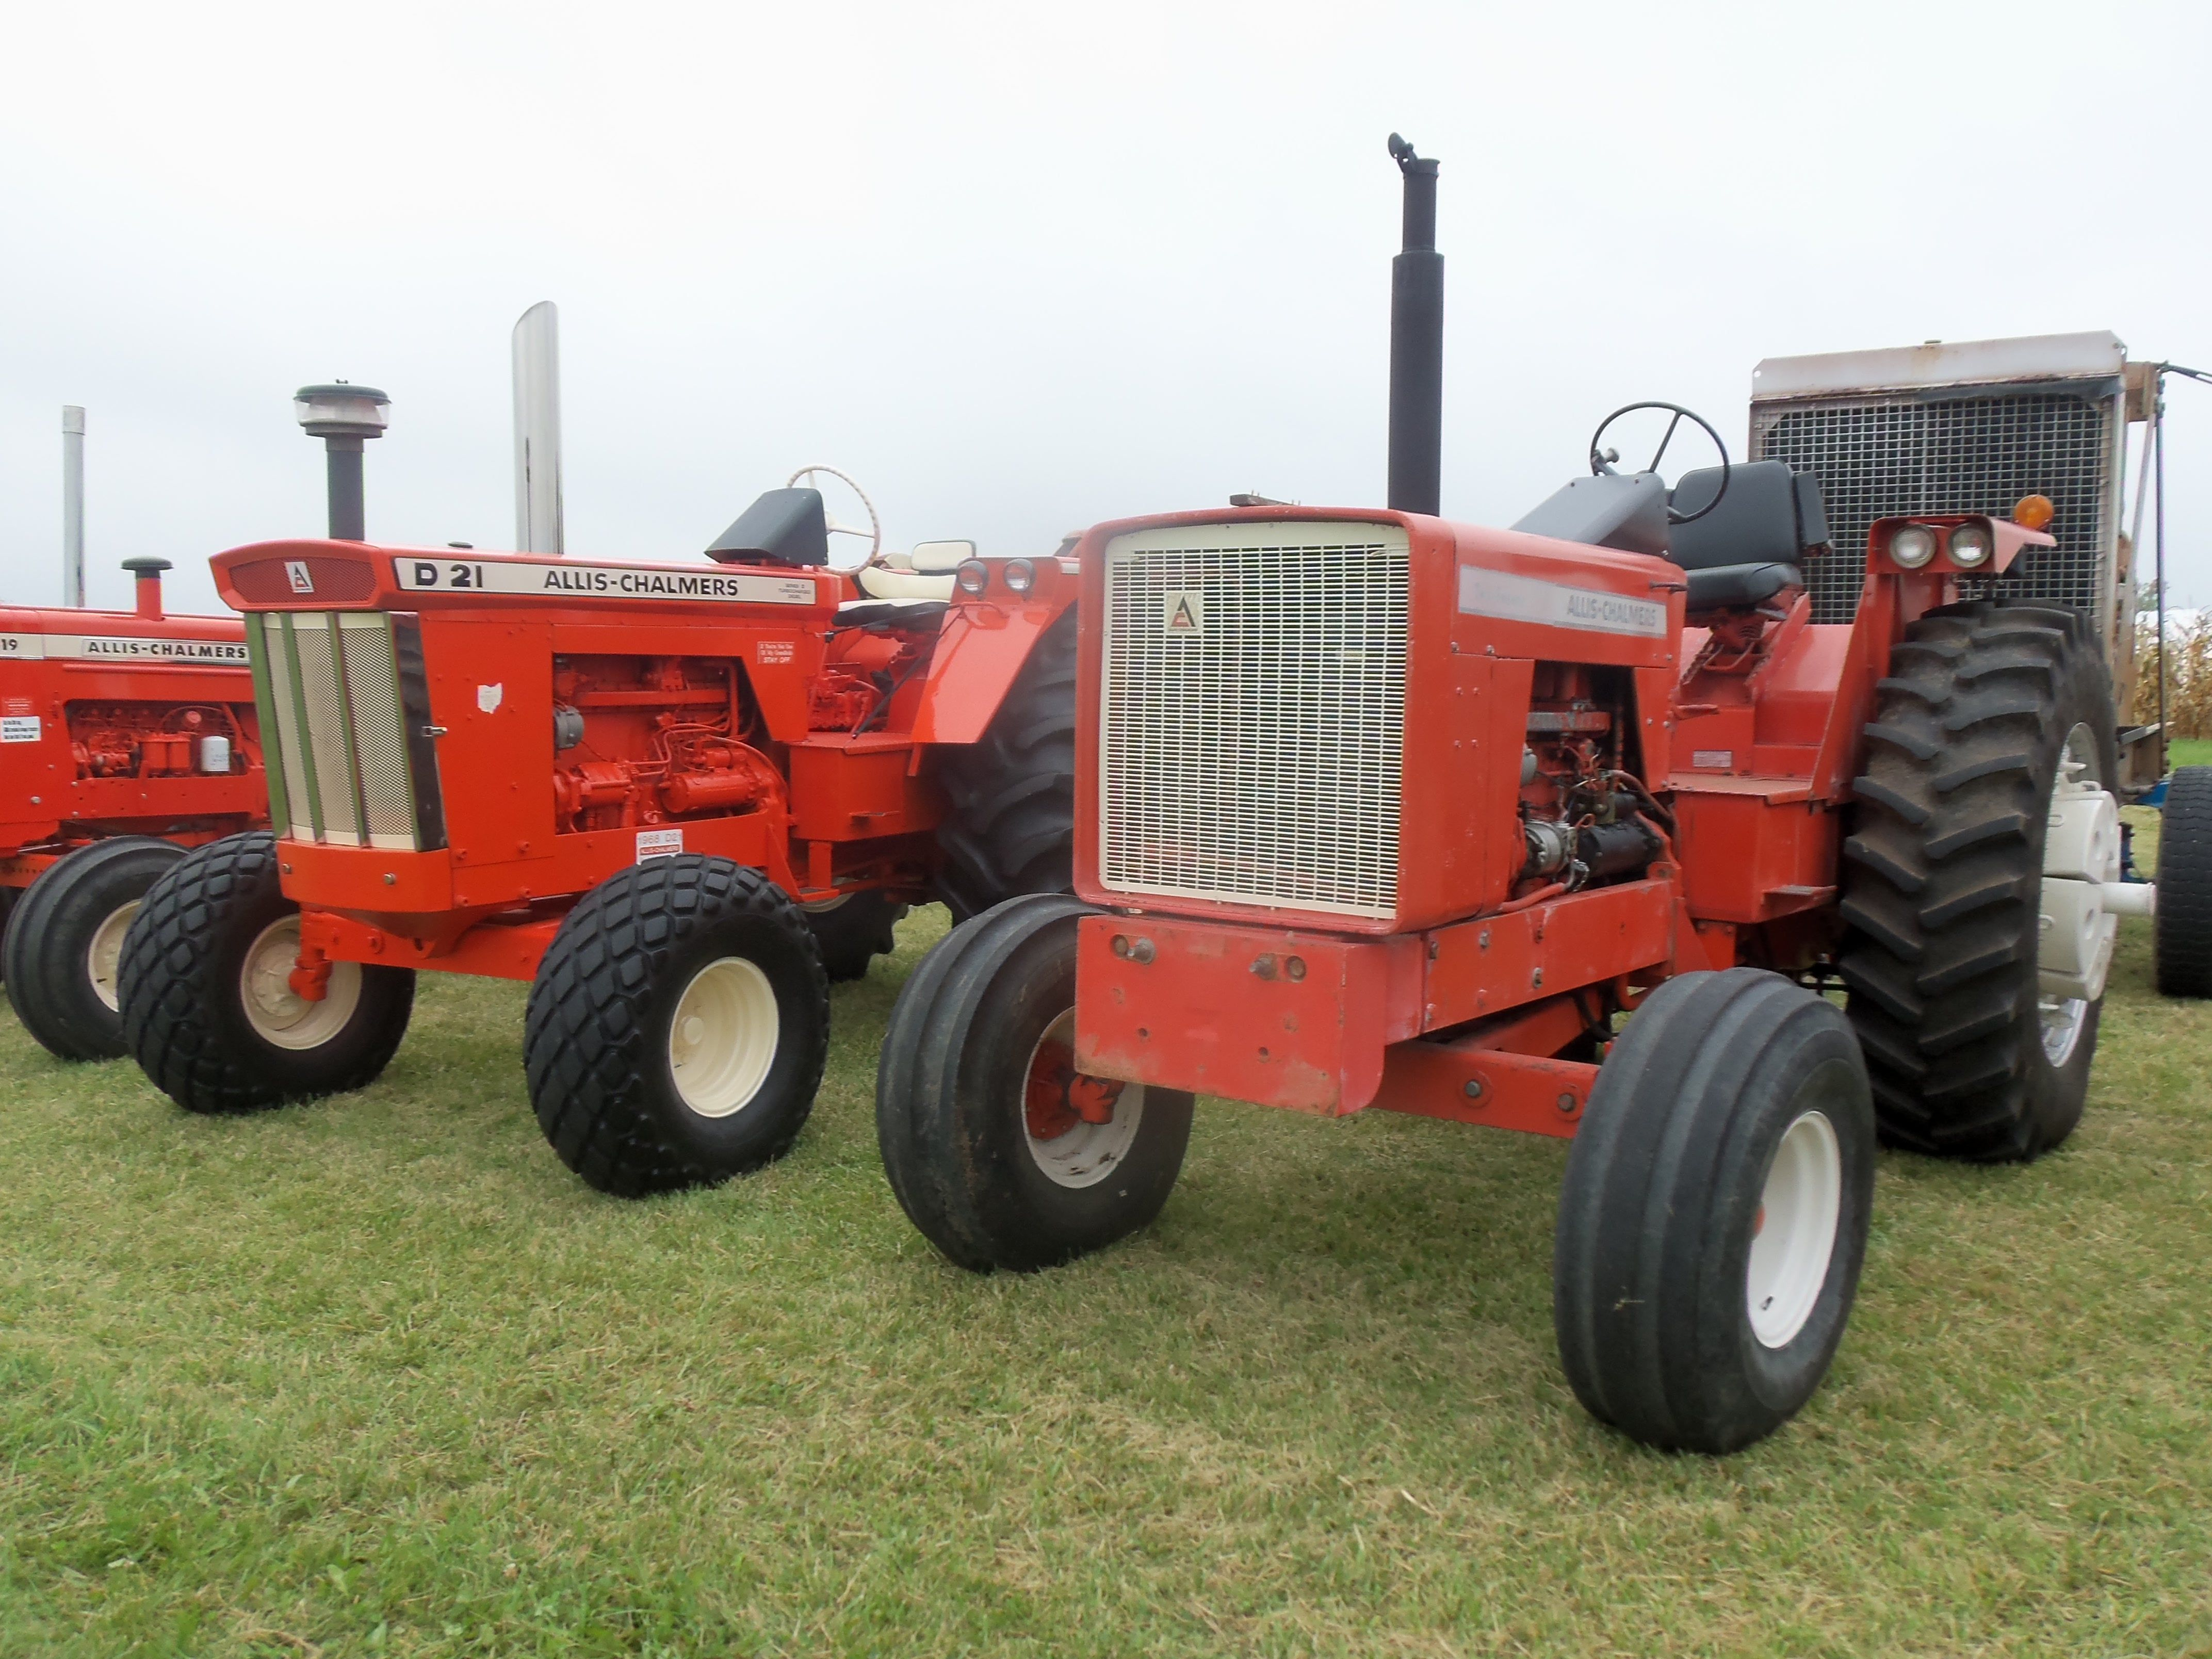 Allis Chalmers 220 & the tractor it replaced the D21 ...